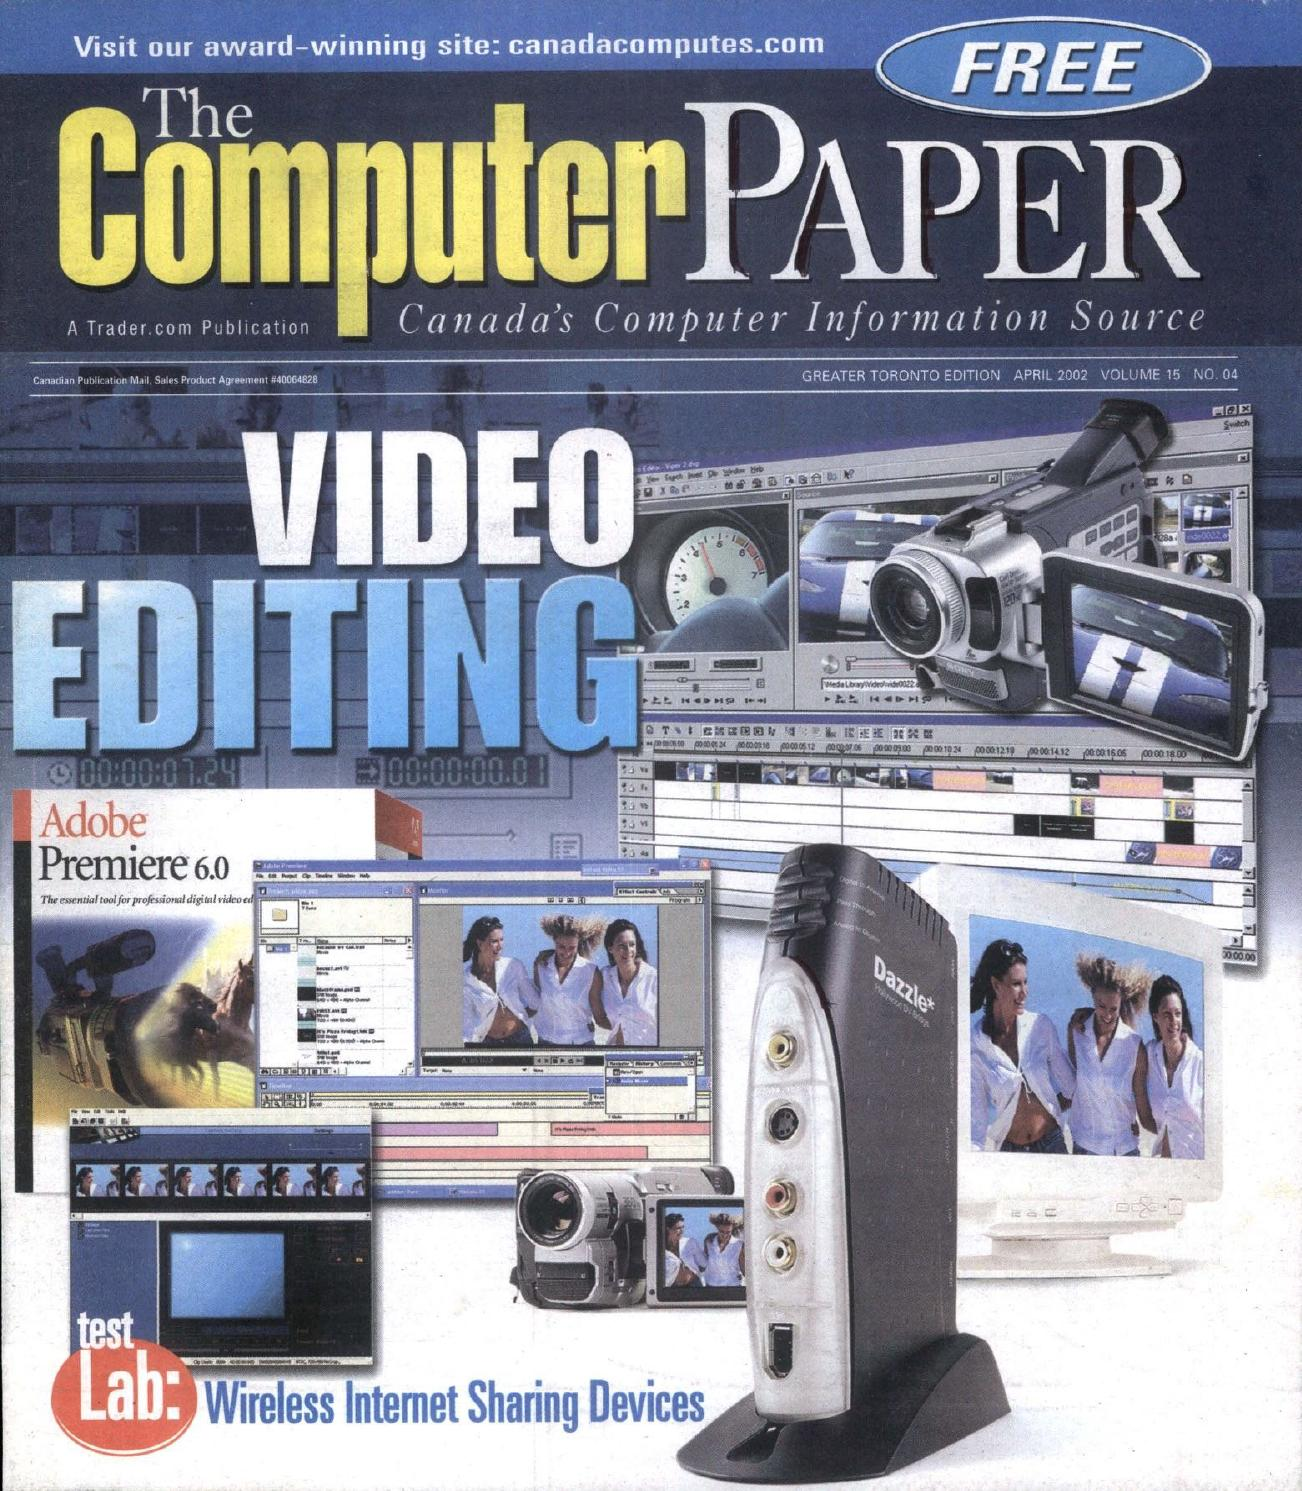 2002 04 The Computer Paper - Ontario Edition by The Computer Paper